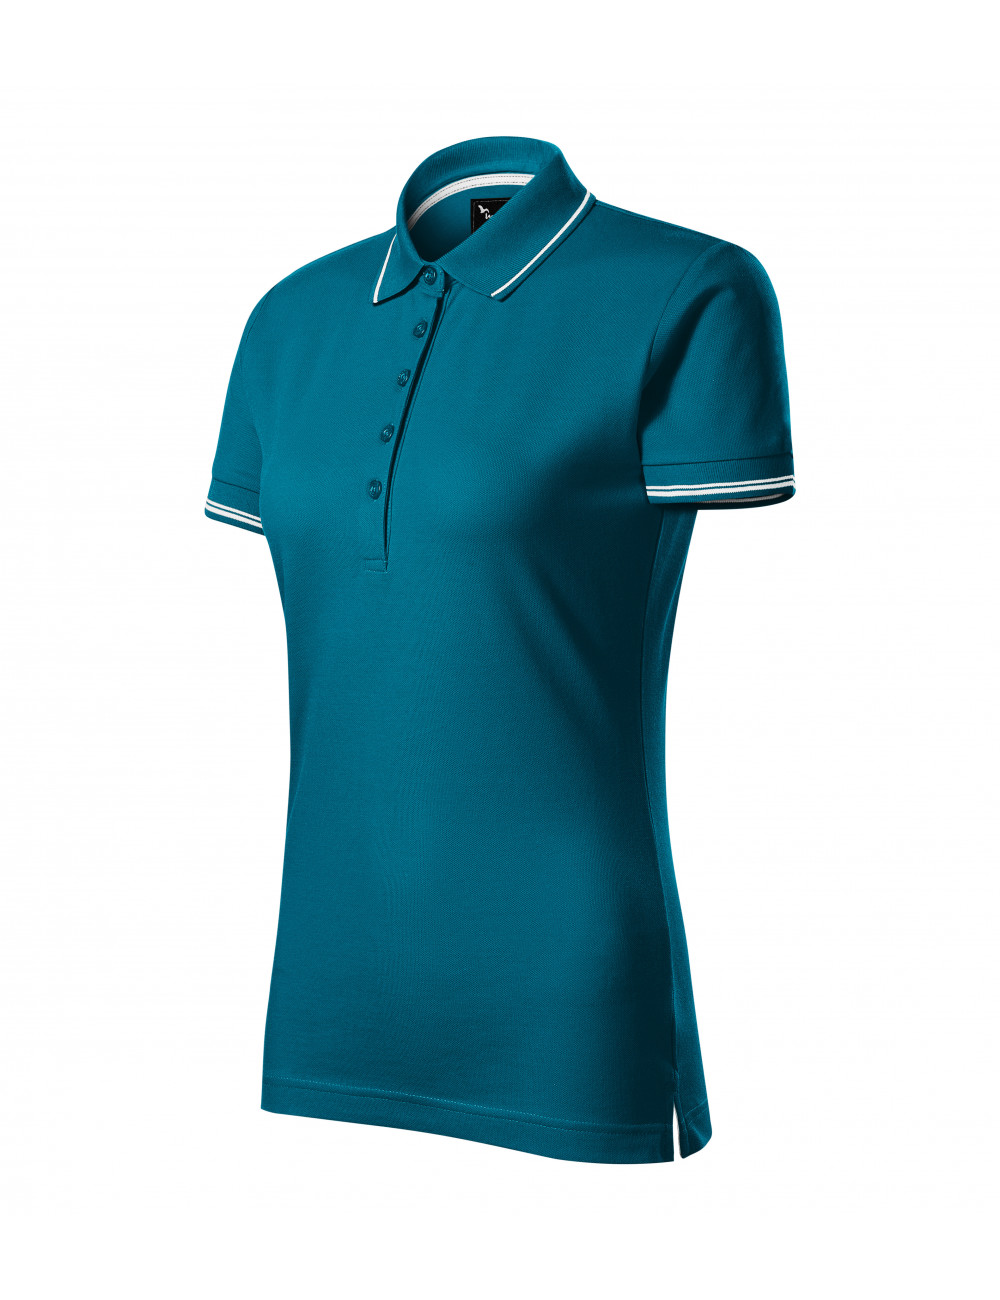 Adler MALFINIPREMIUM Koszulka polo damska Perfection plain 253 petrol blue